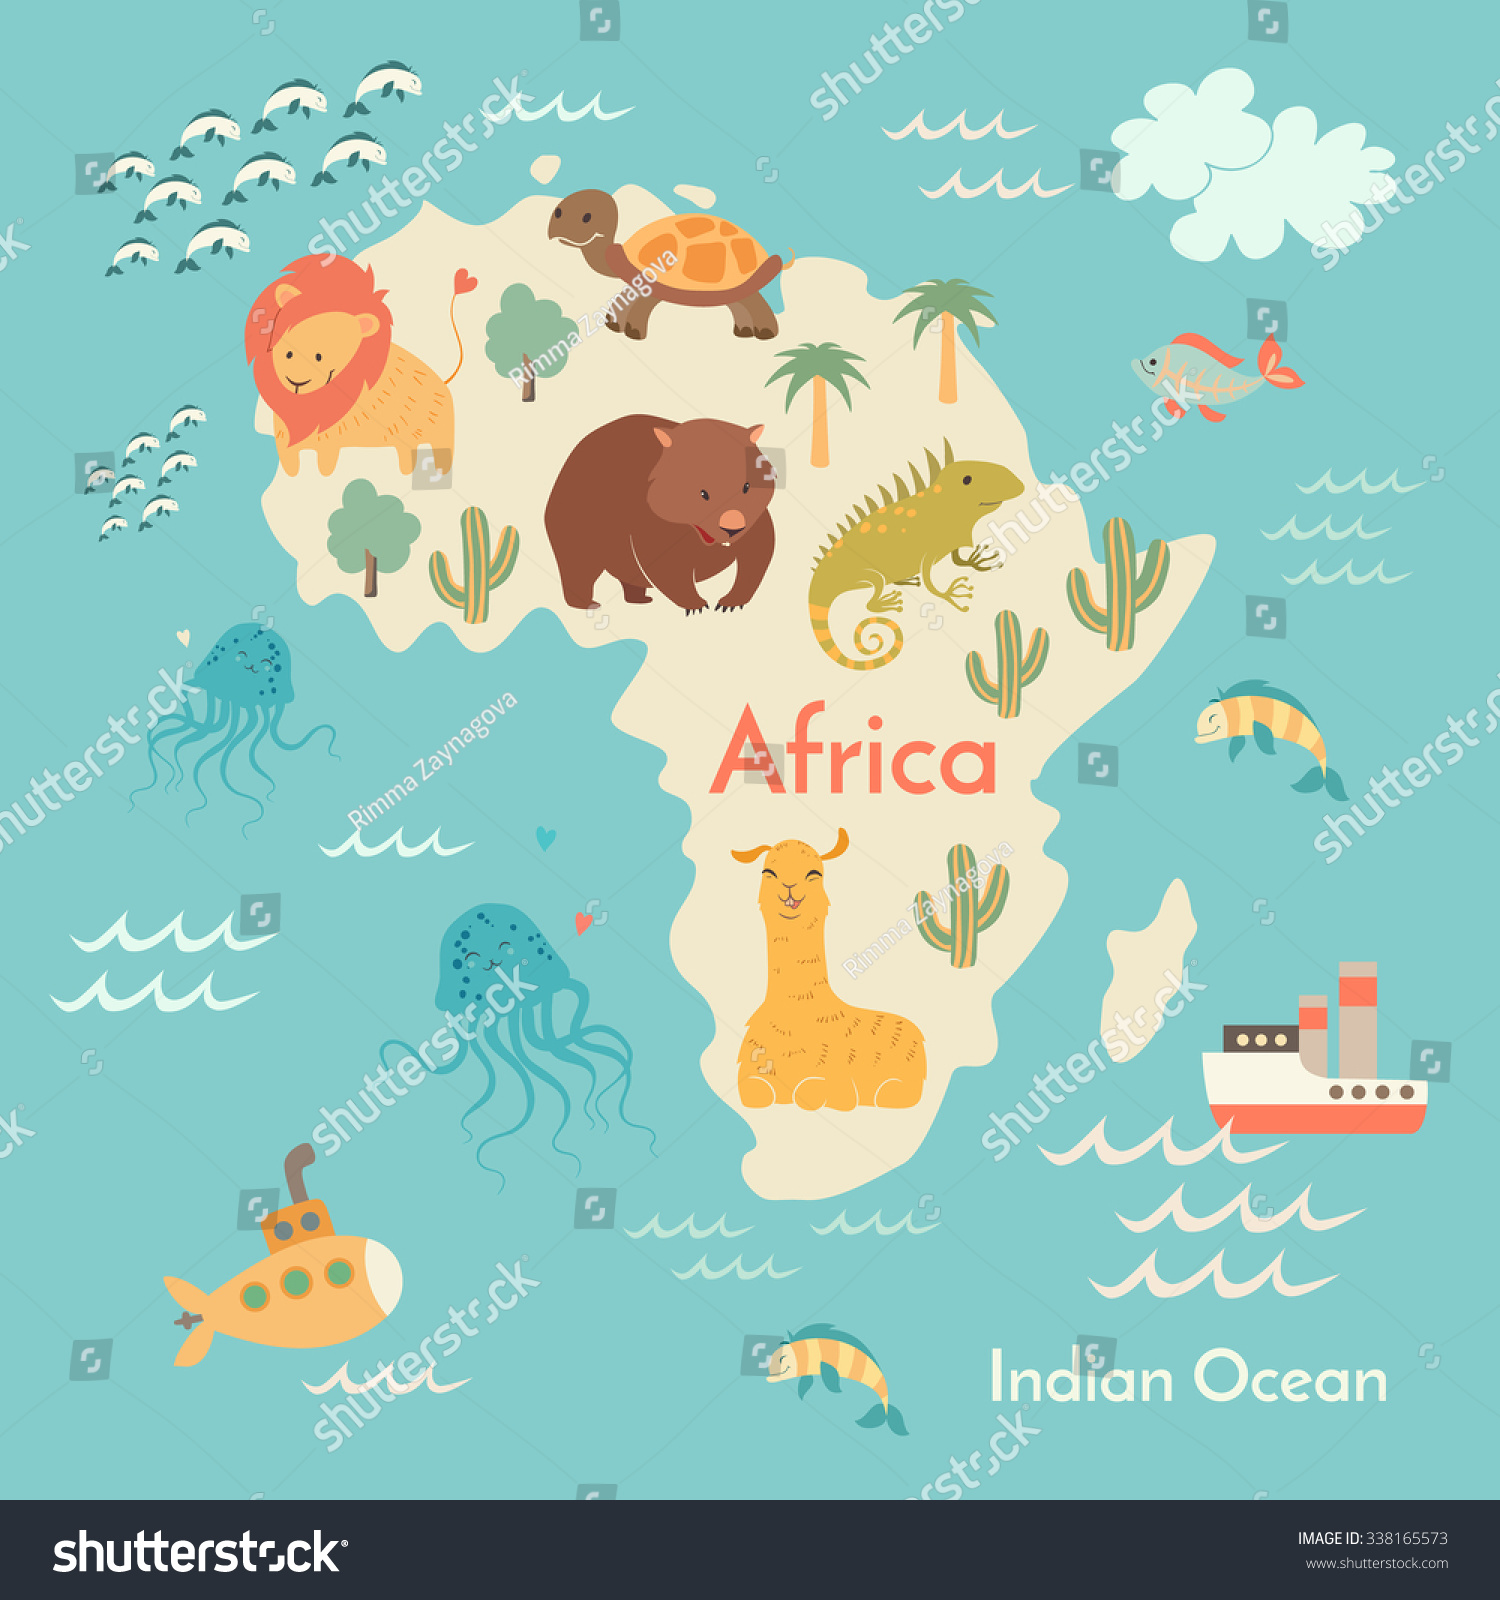 Animals world map africa africa map vector de stock338165573 animals world map africa africa map vector de stock338165573 shutterstock gumiabroncs Choice Image